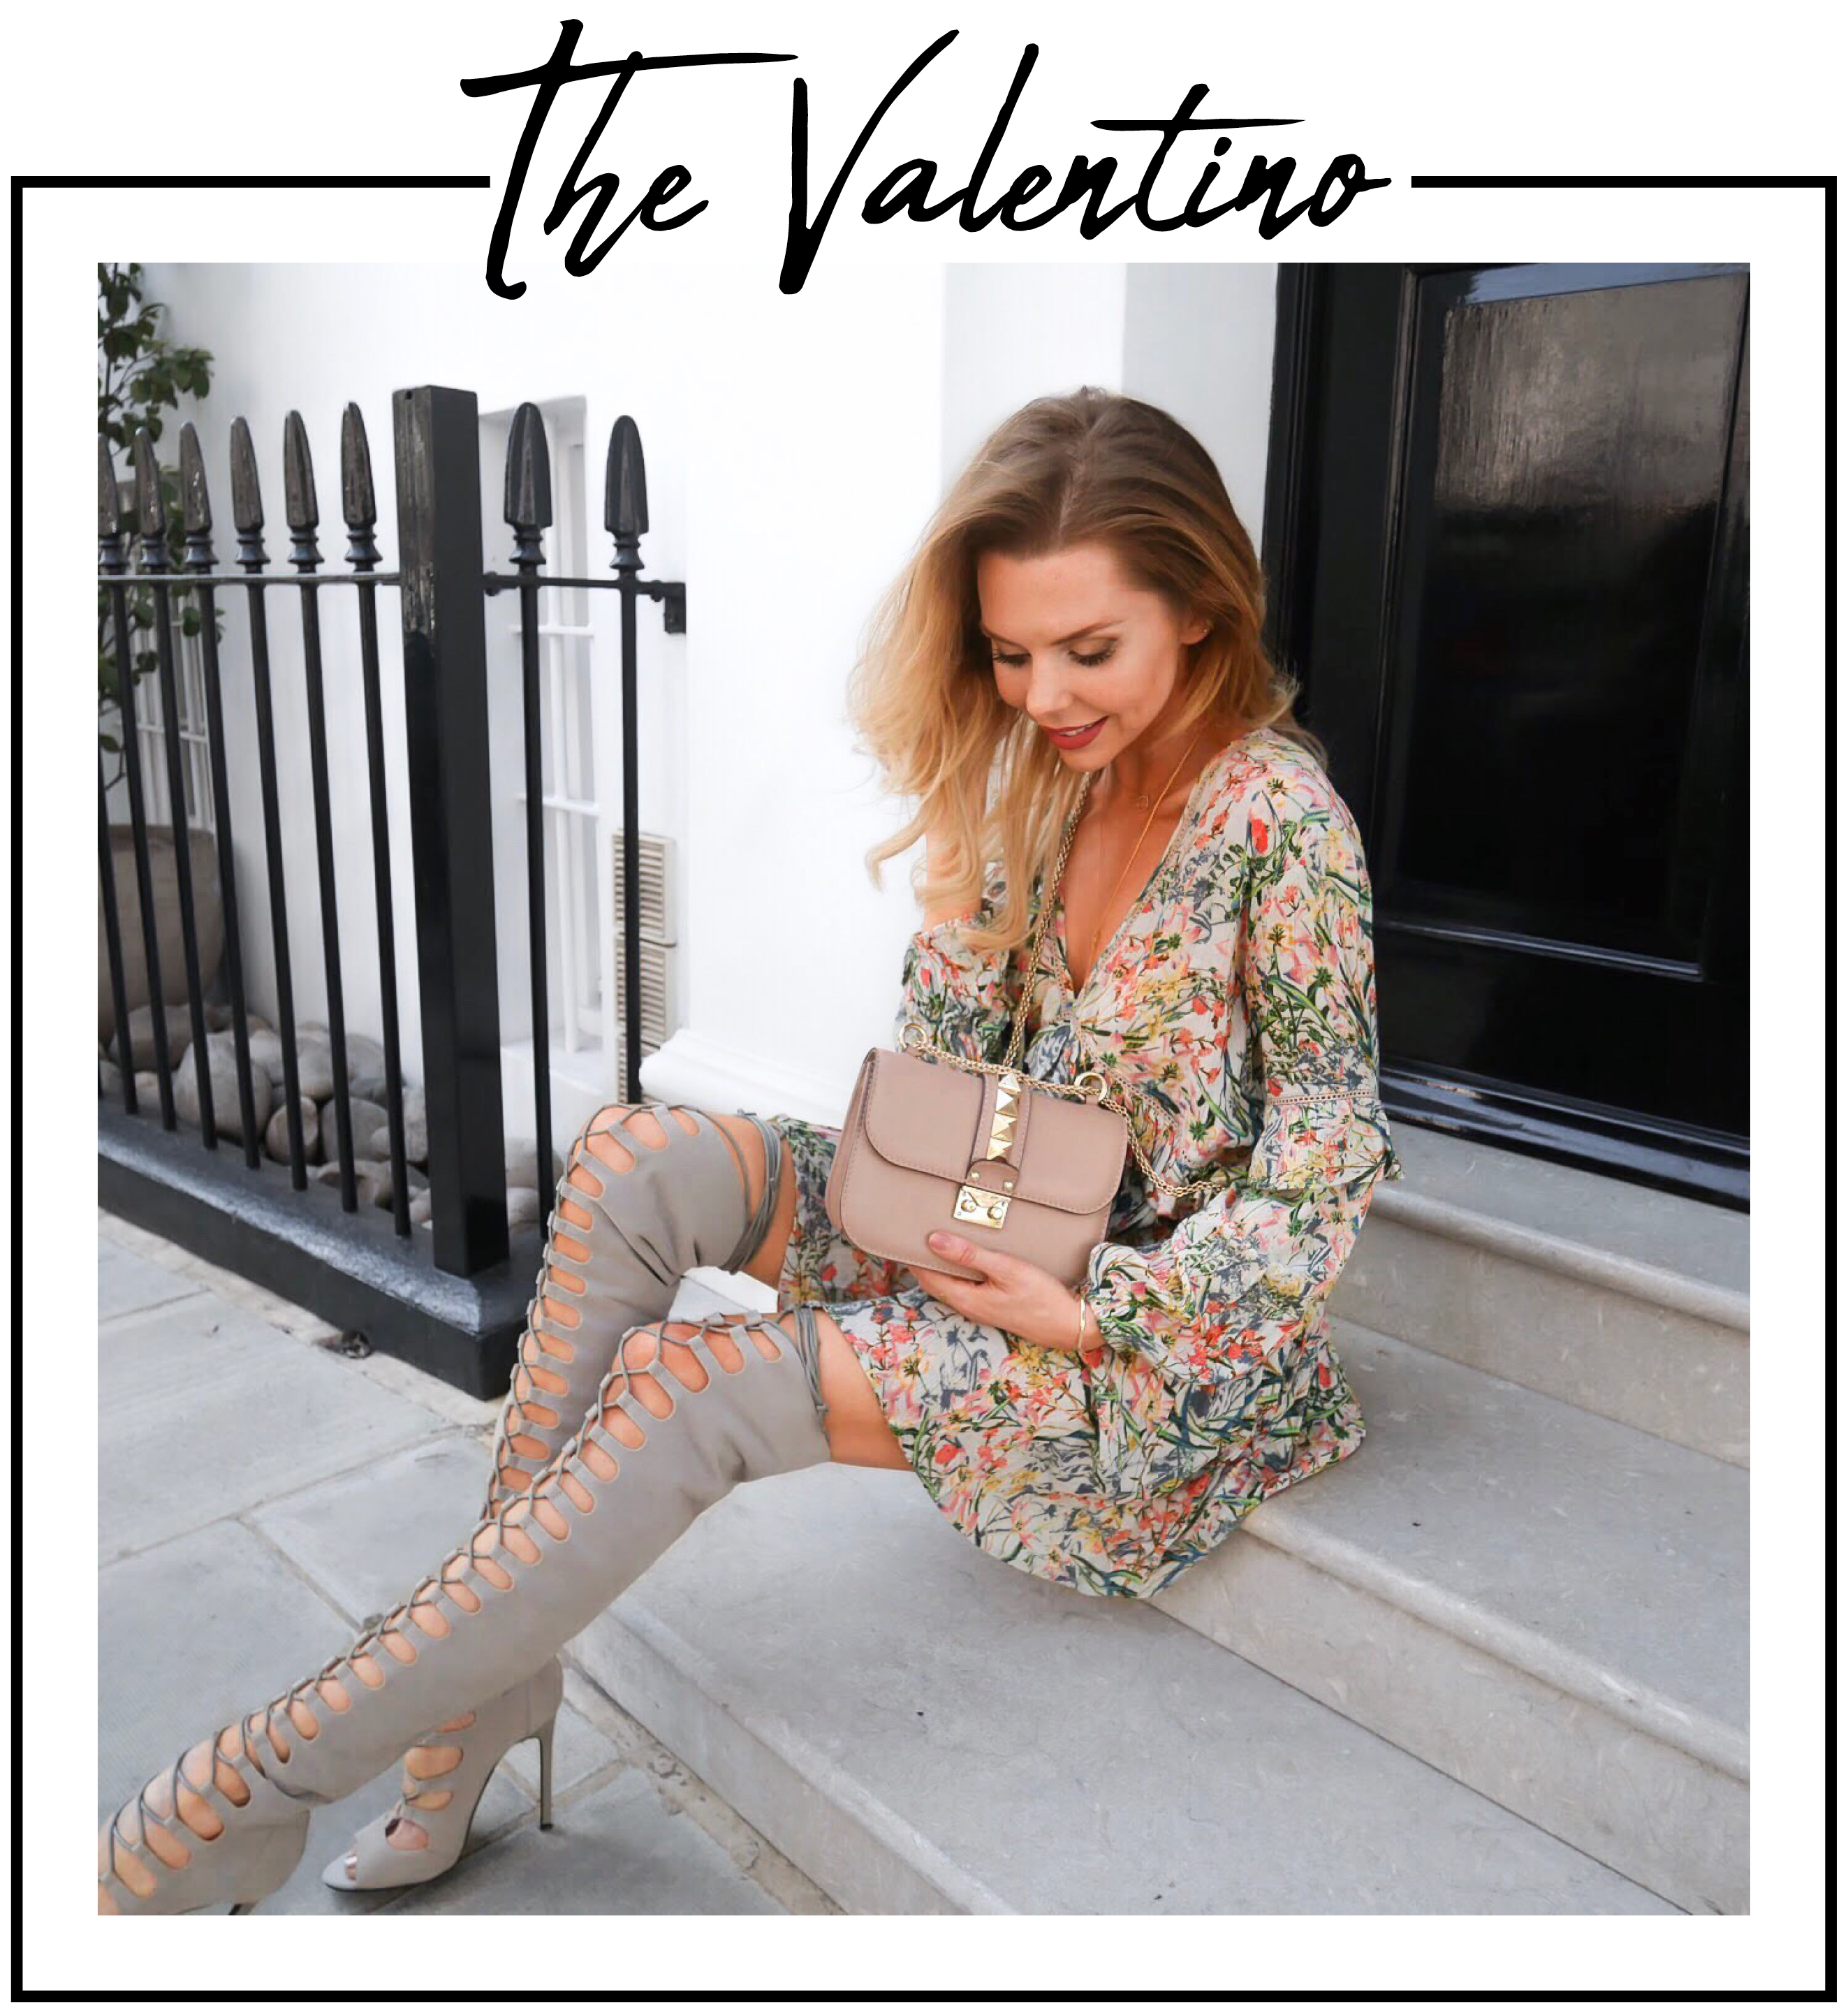 Valentino, Valentino Rockstud, Valentino bag, asos, what to wear in summer, asos dresses, haul, fashion style, london fashion blogger, london fashion girl, laura blair